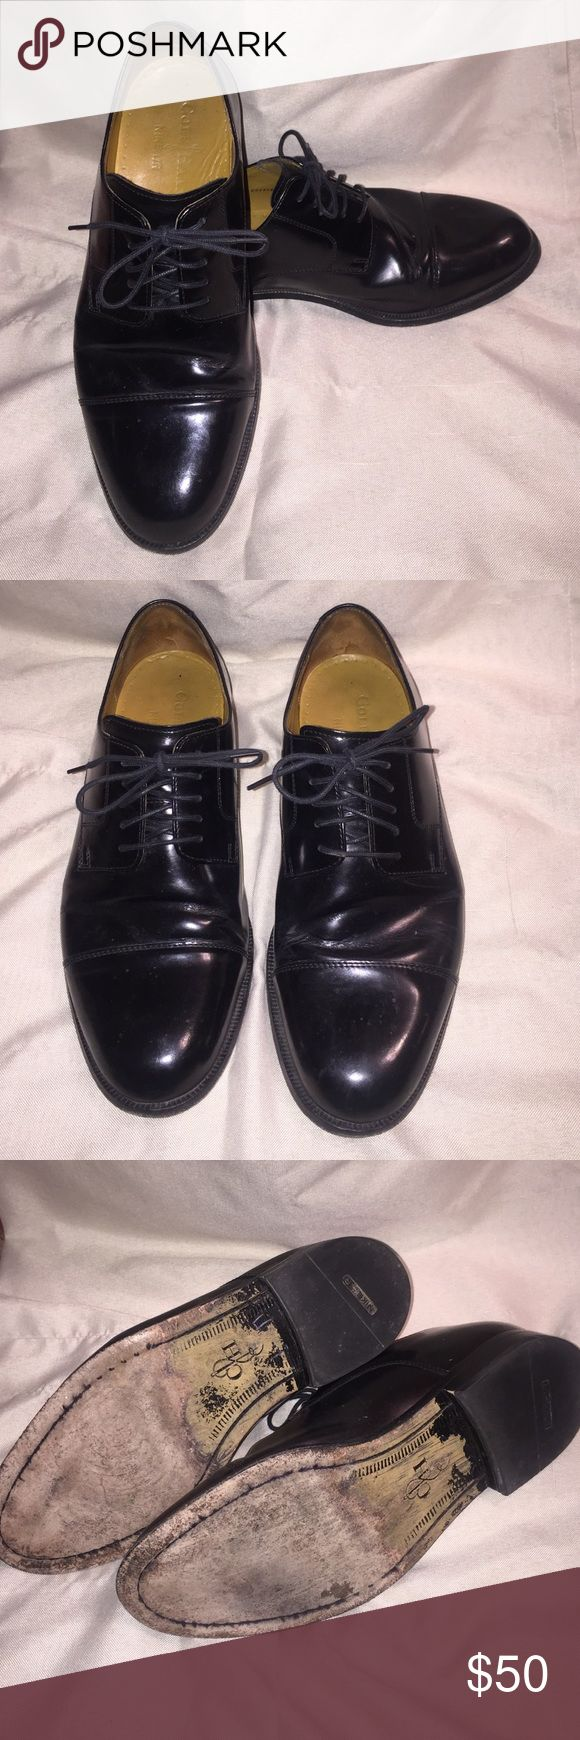 Men's Cole Haan Nike tech black dress shoes. Men's Nike tech Cole Haan dress shoes. Size 9M. extremely good condition and well acted for. Normal wear on bottoms of shoes with a lot of wear still left. Cole Haan Shoes Oxfords & Derbys